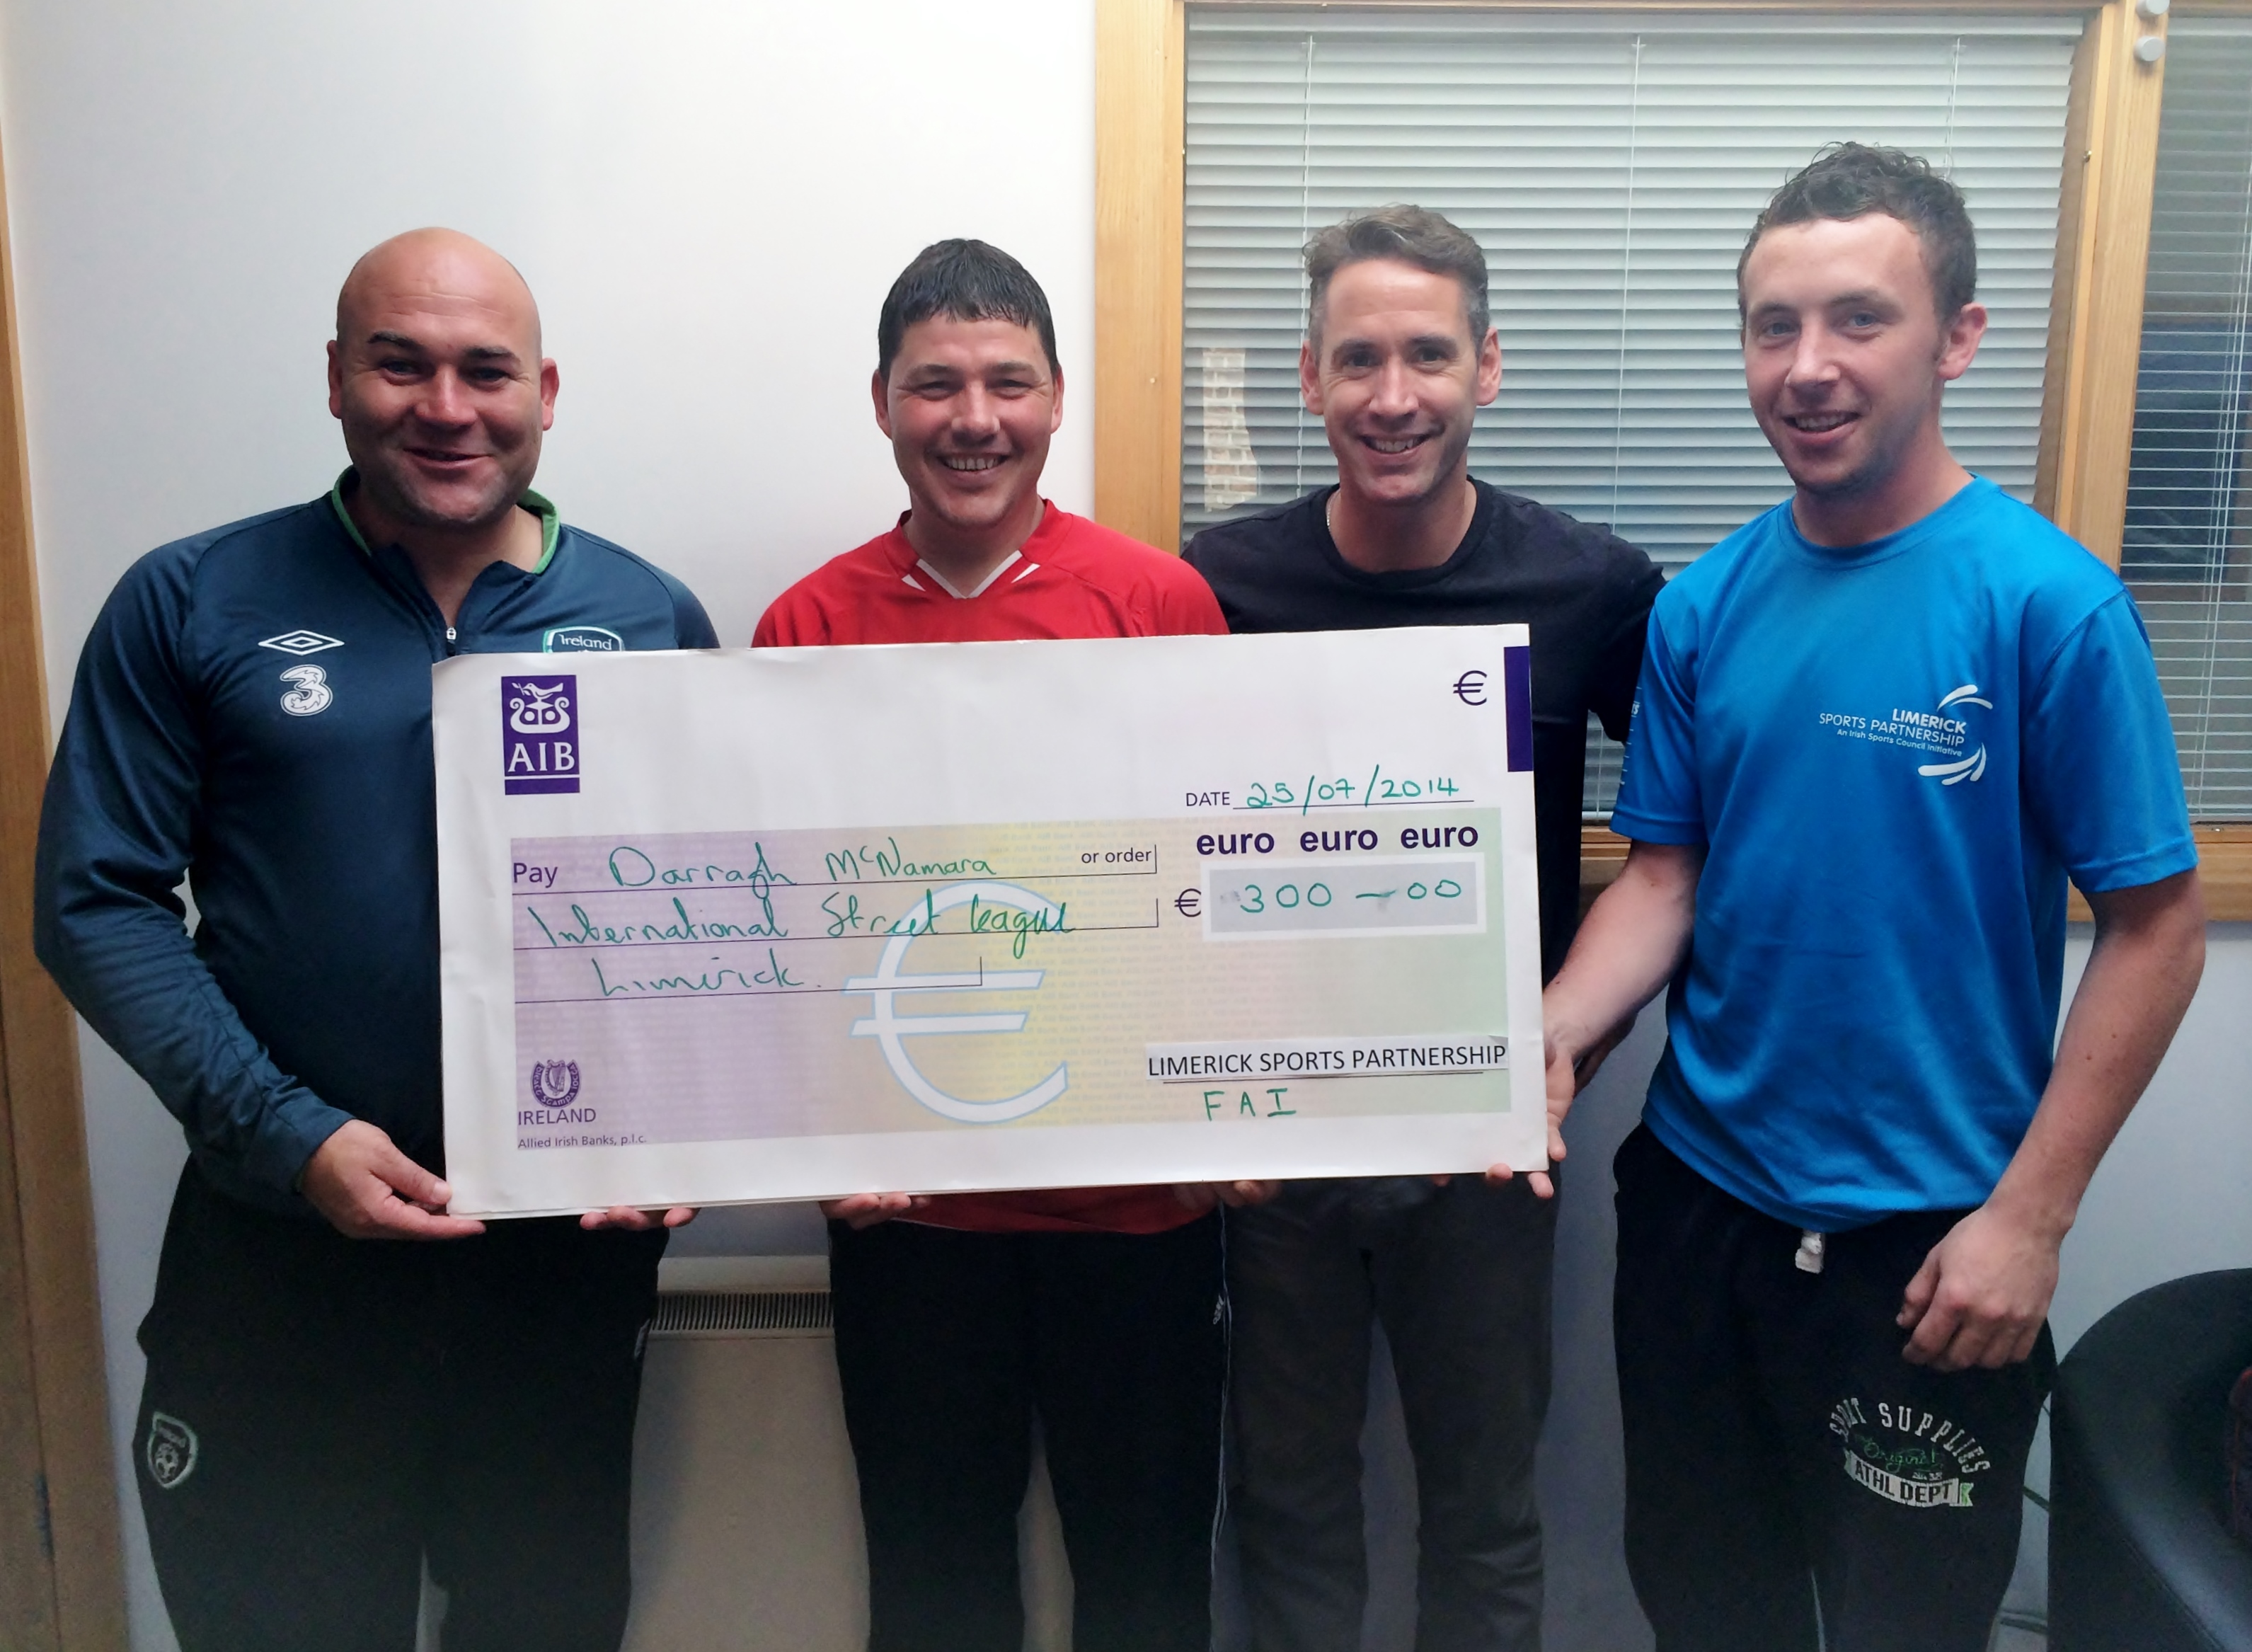 Darragh McNamara, Hill Celtic player and member of Southill Outreach Programme (pictured centre) receives a cheque for 300 euro following the Limerick World Cup, held in Annacotty last week. Also pictured is L-R Jason O'Connor, FAI Development Officer; David McPhillips, Community Substance Misuse Team (CSMT); and Padraig Reale, Limerick Sports Partnership.